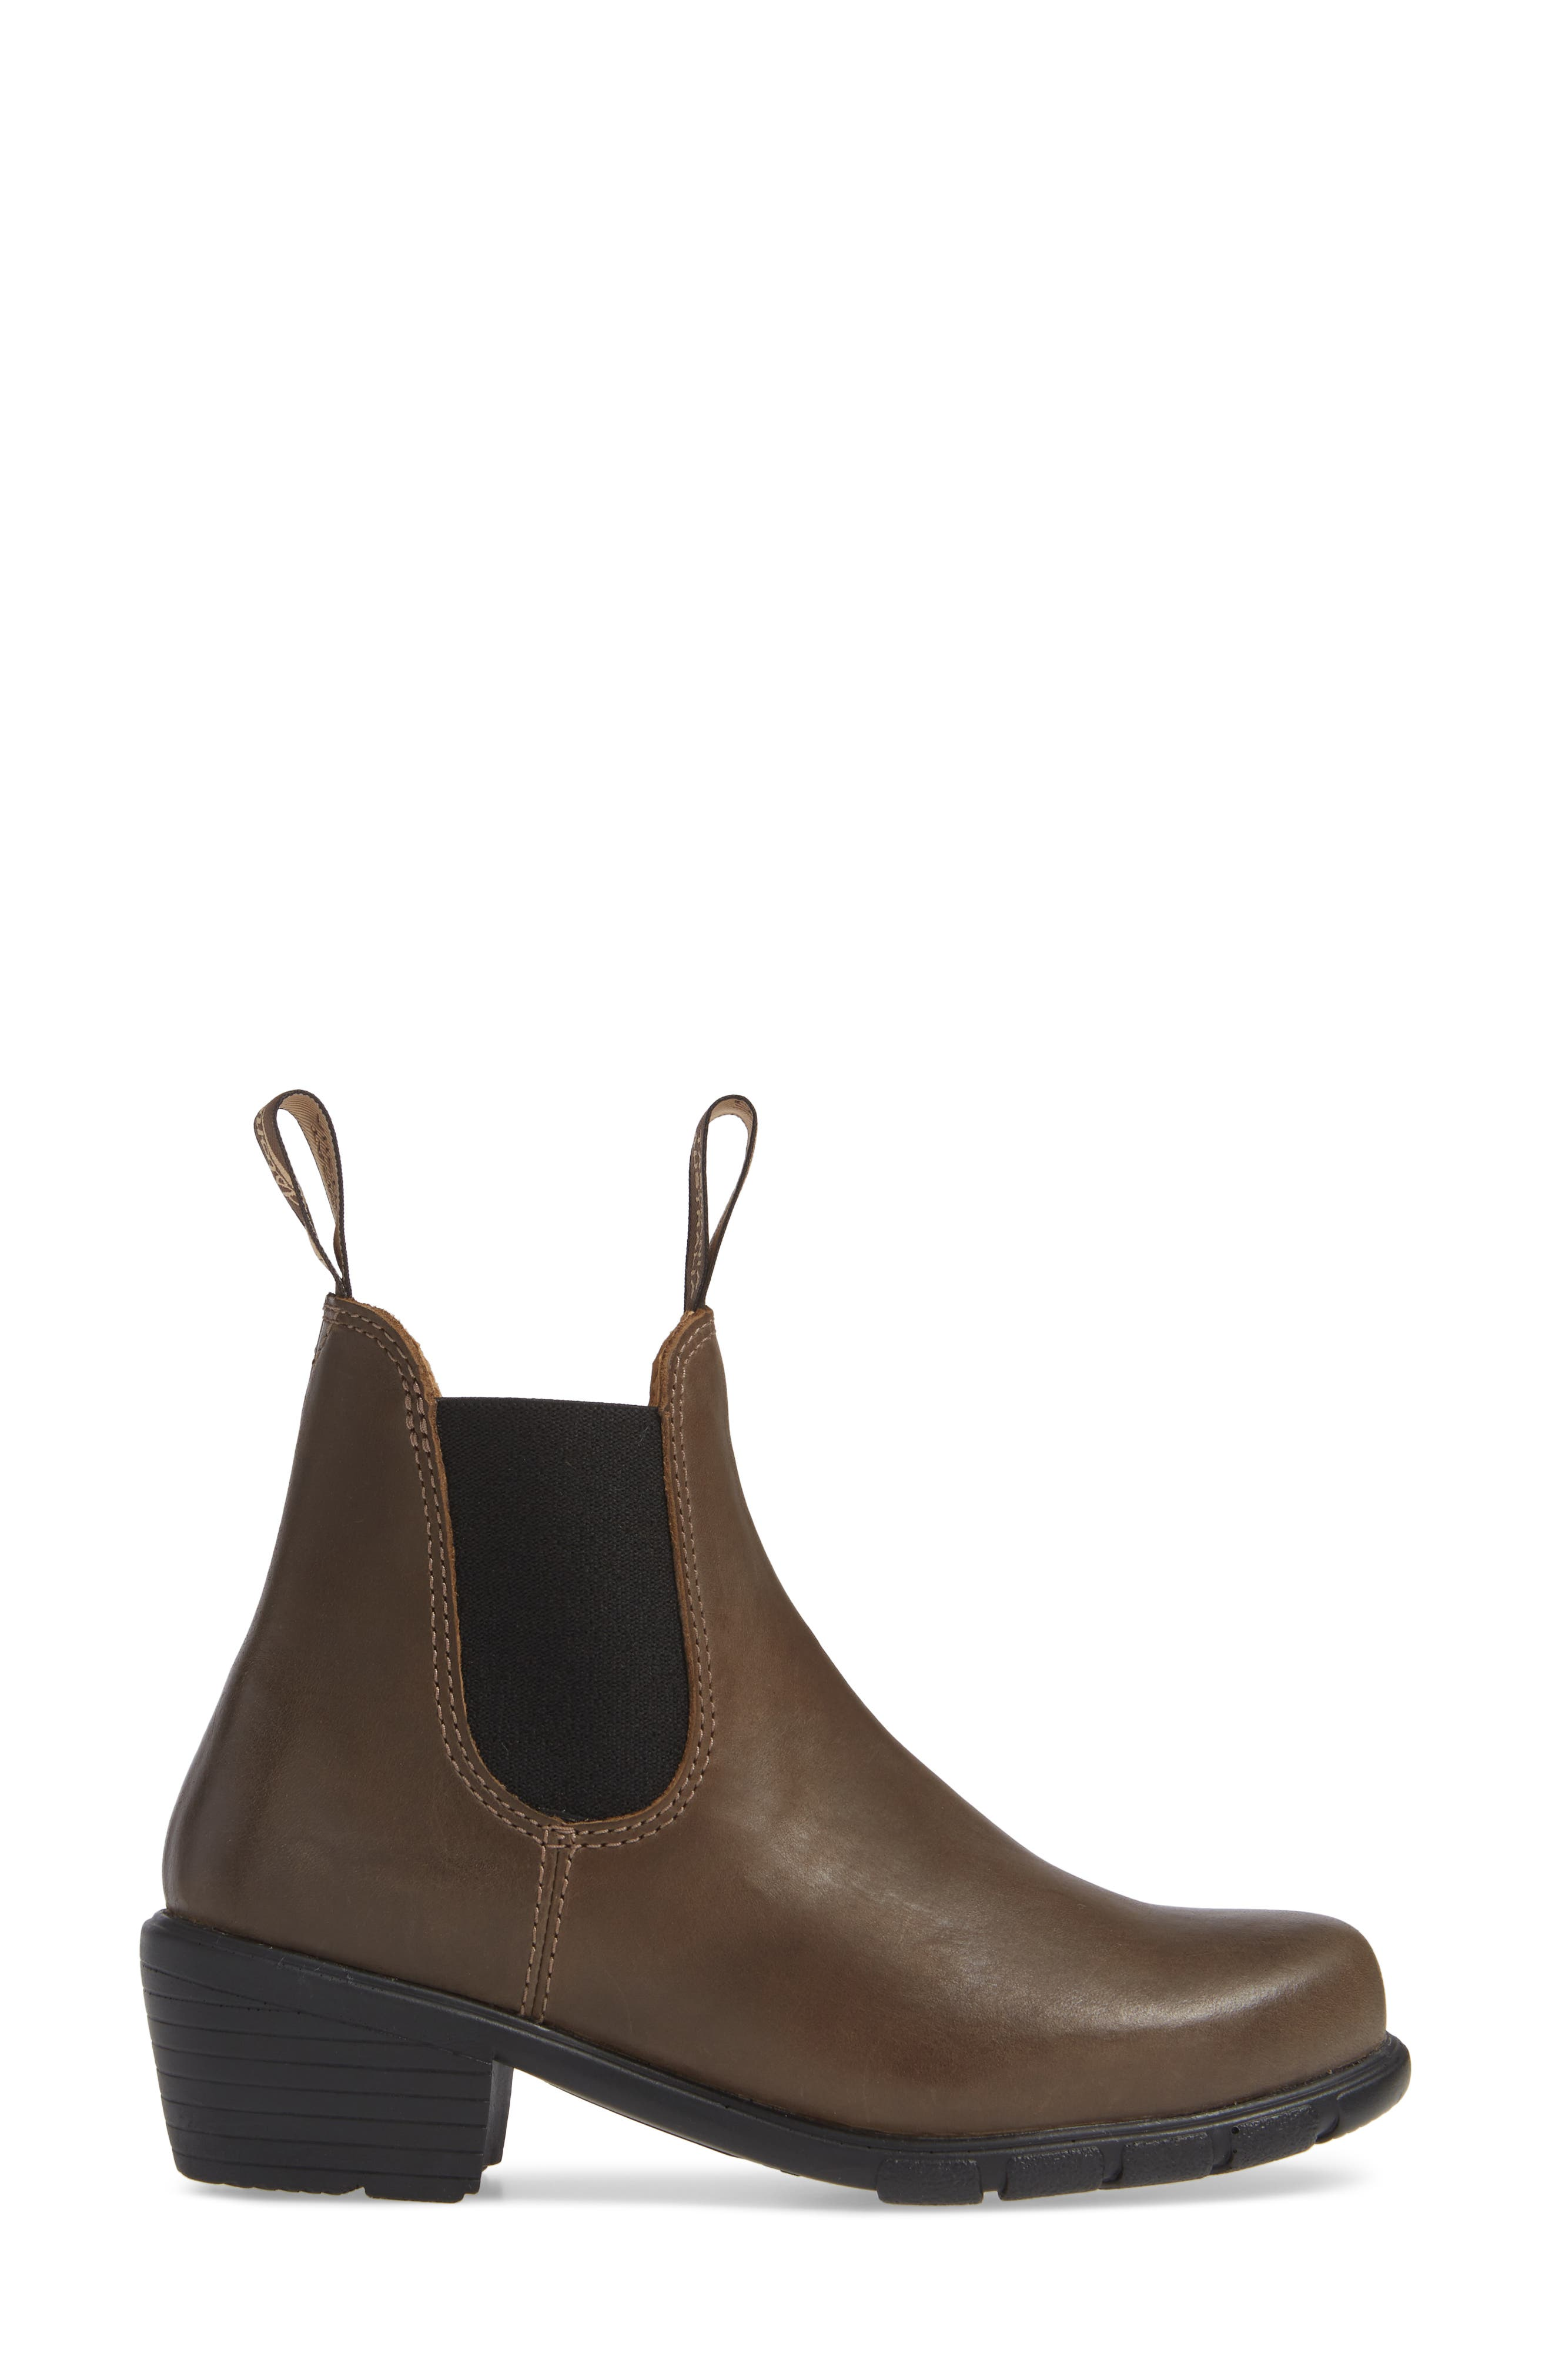 1671 Chelsea Boot,                             Alternate thumbnail 3, color,                             ANTIQUE TAUPE LEATHER